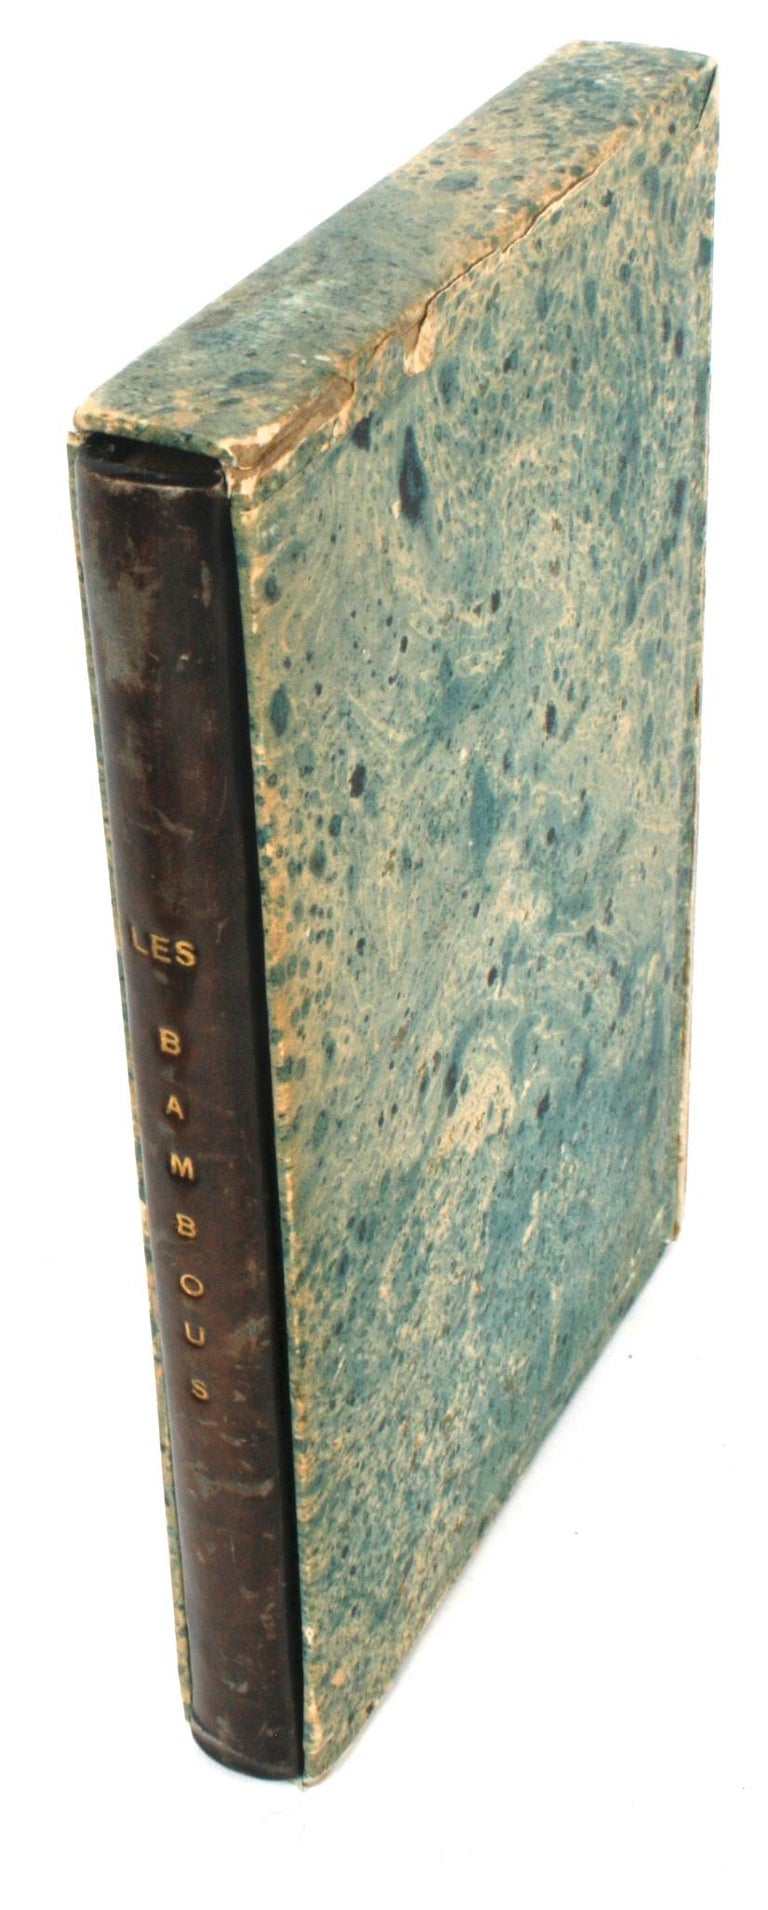 20th Century Les Bambous: Fables de La Fontaine For Sale